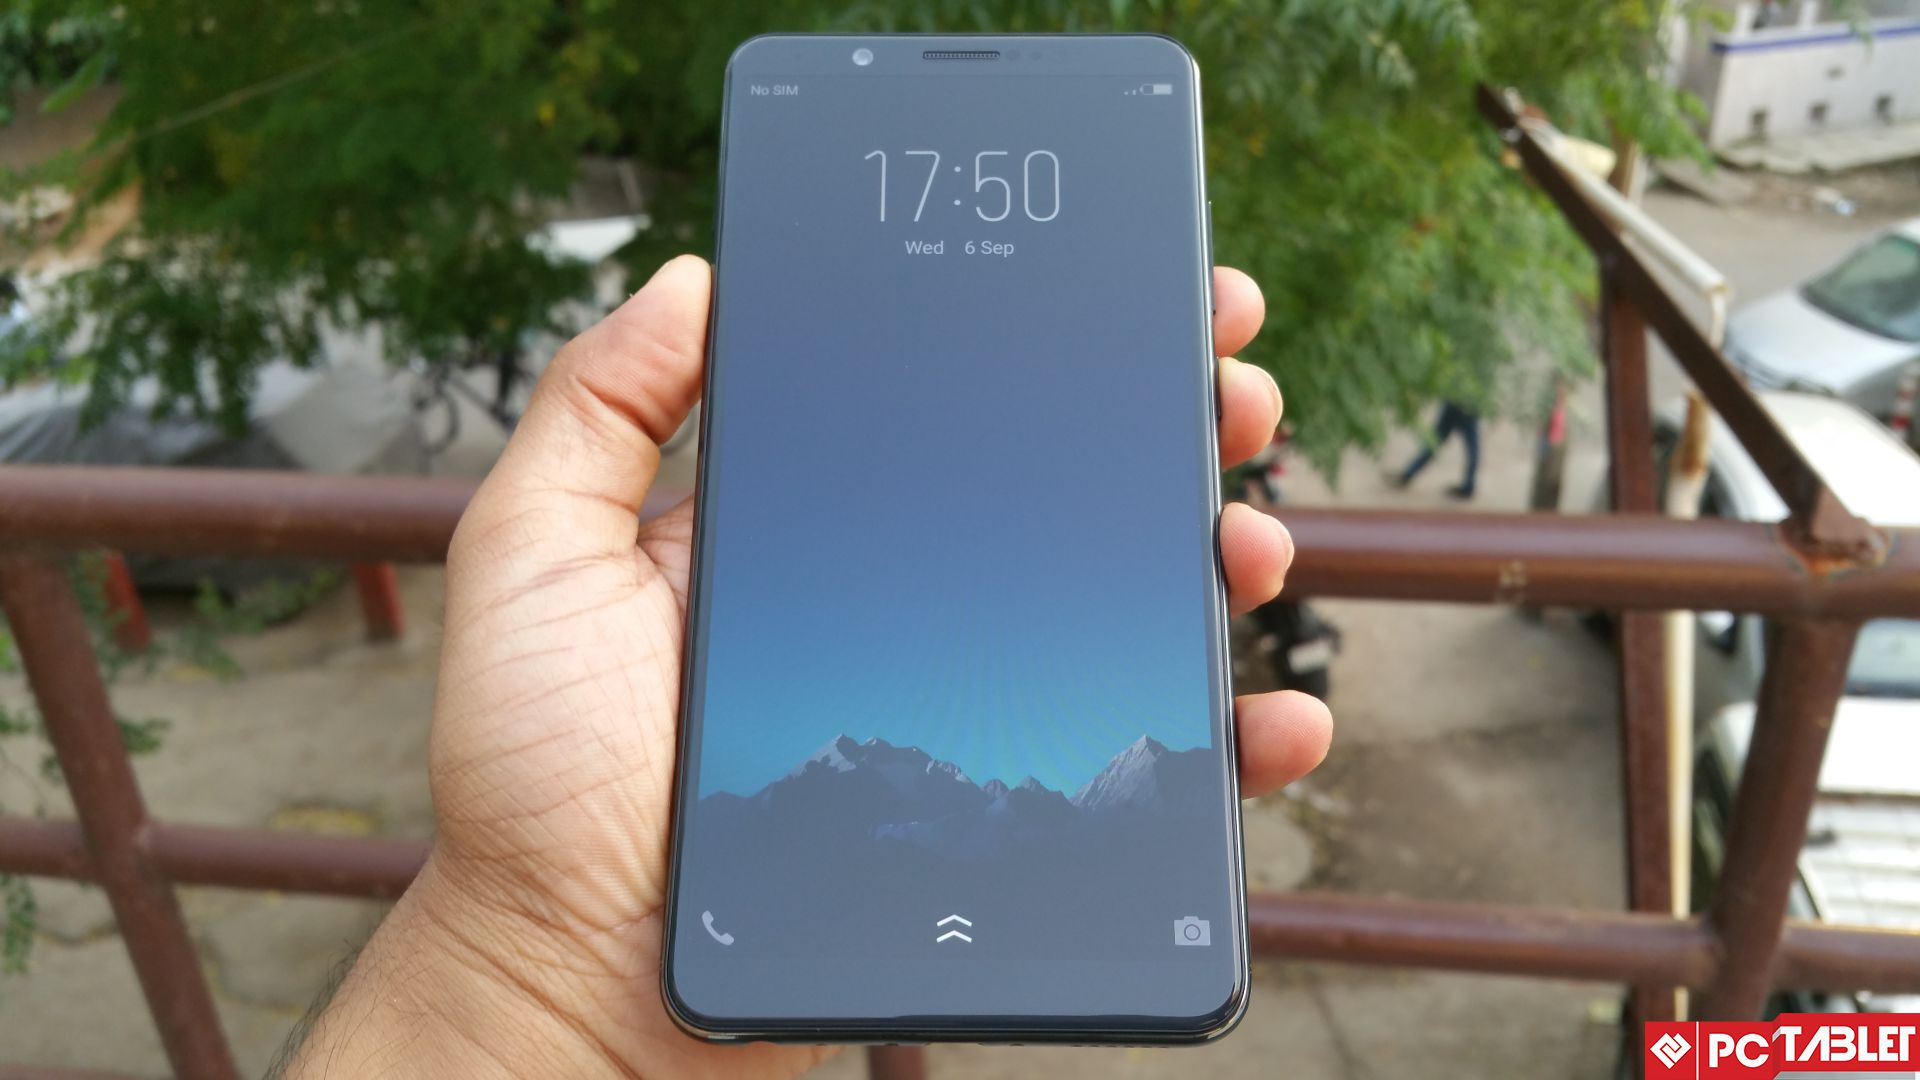 Vivo V7 Plus Initial Impressions 24mp Selfie On Fullview